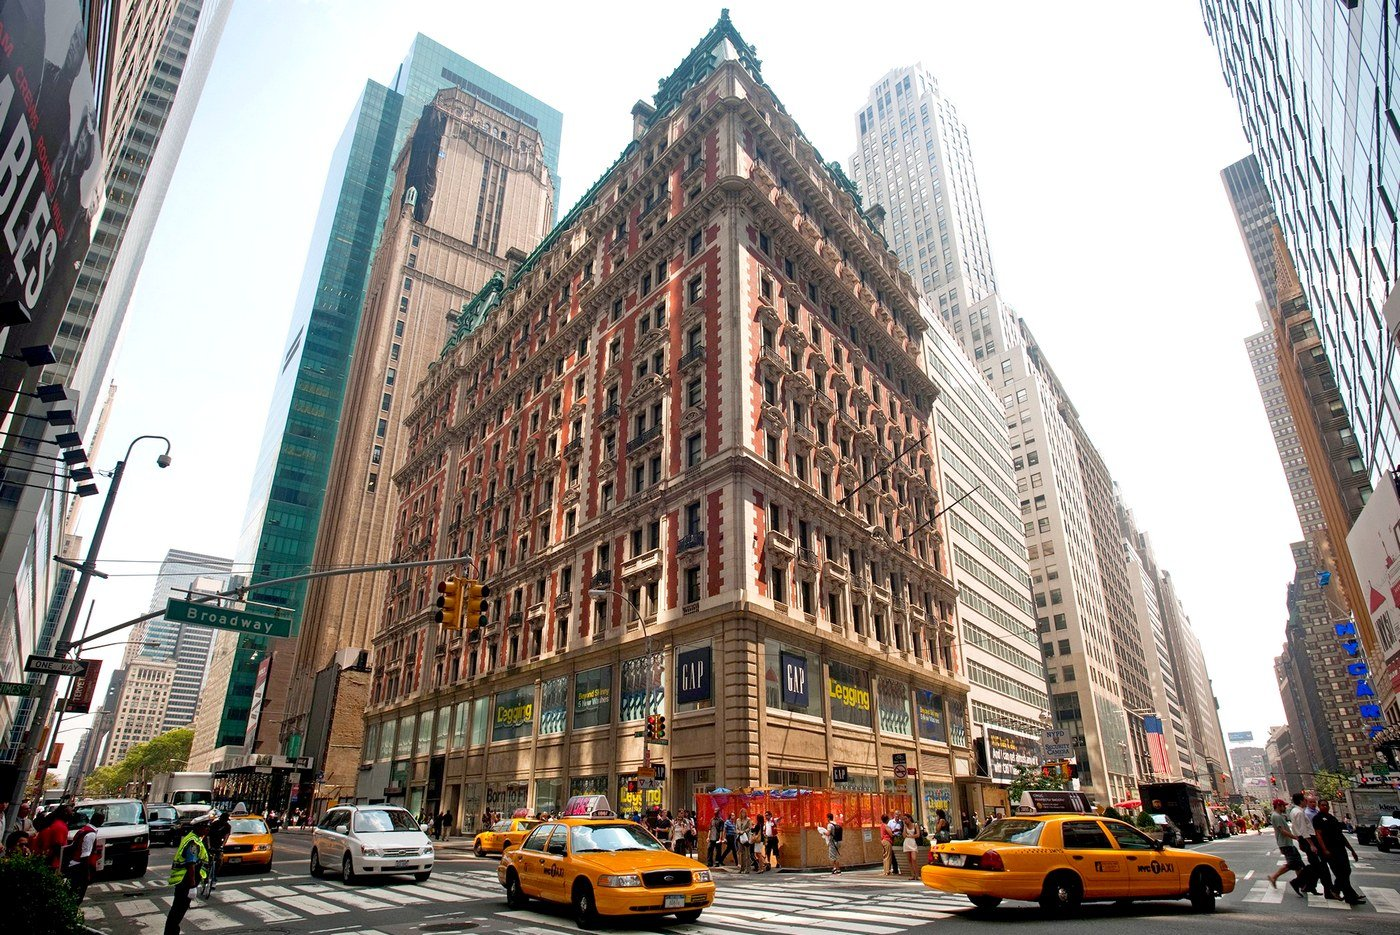 New York Hotel Online Promotional Code 80 Off